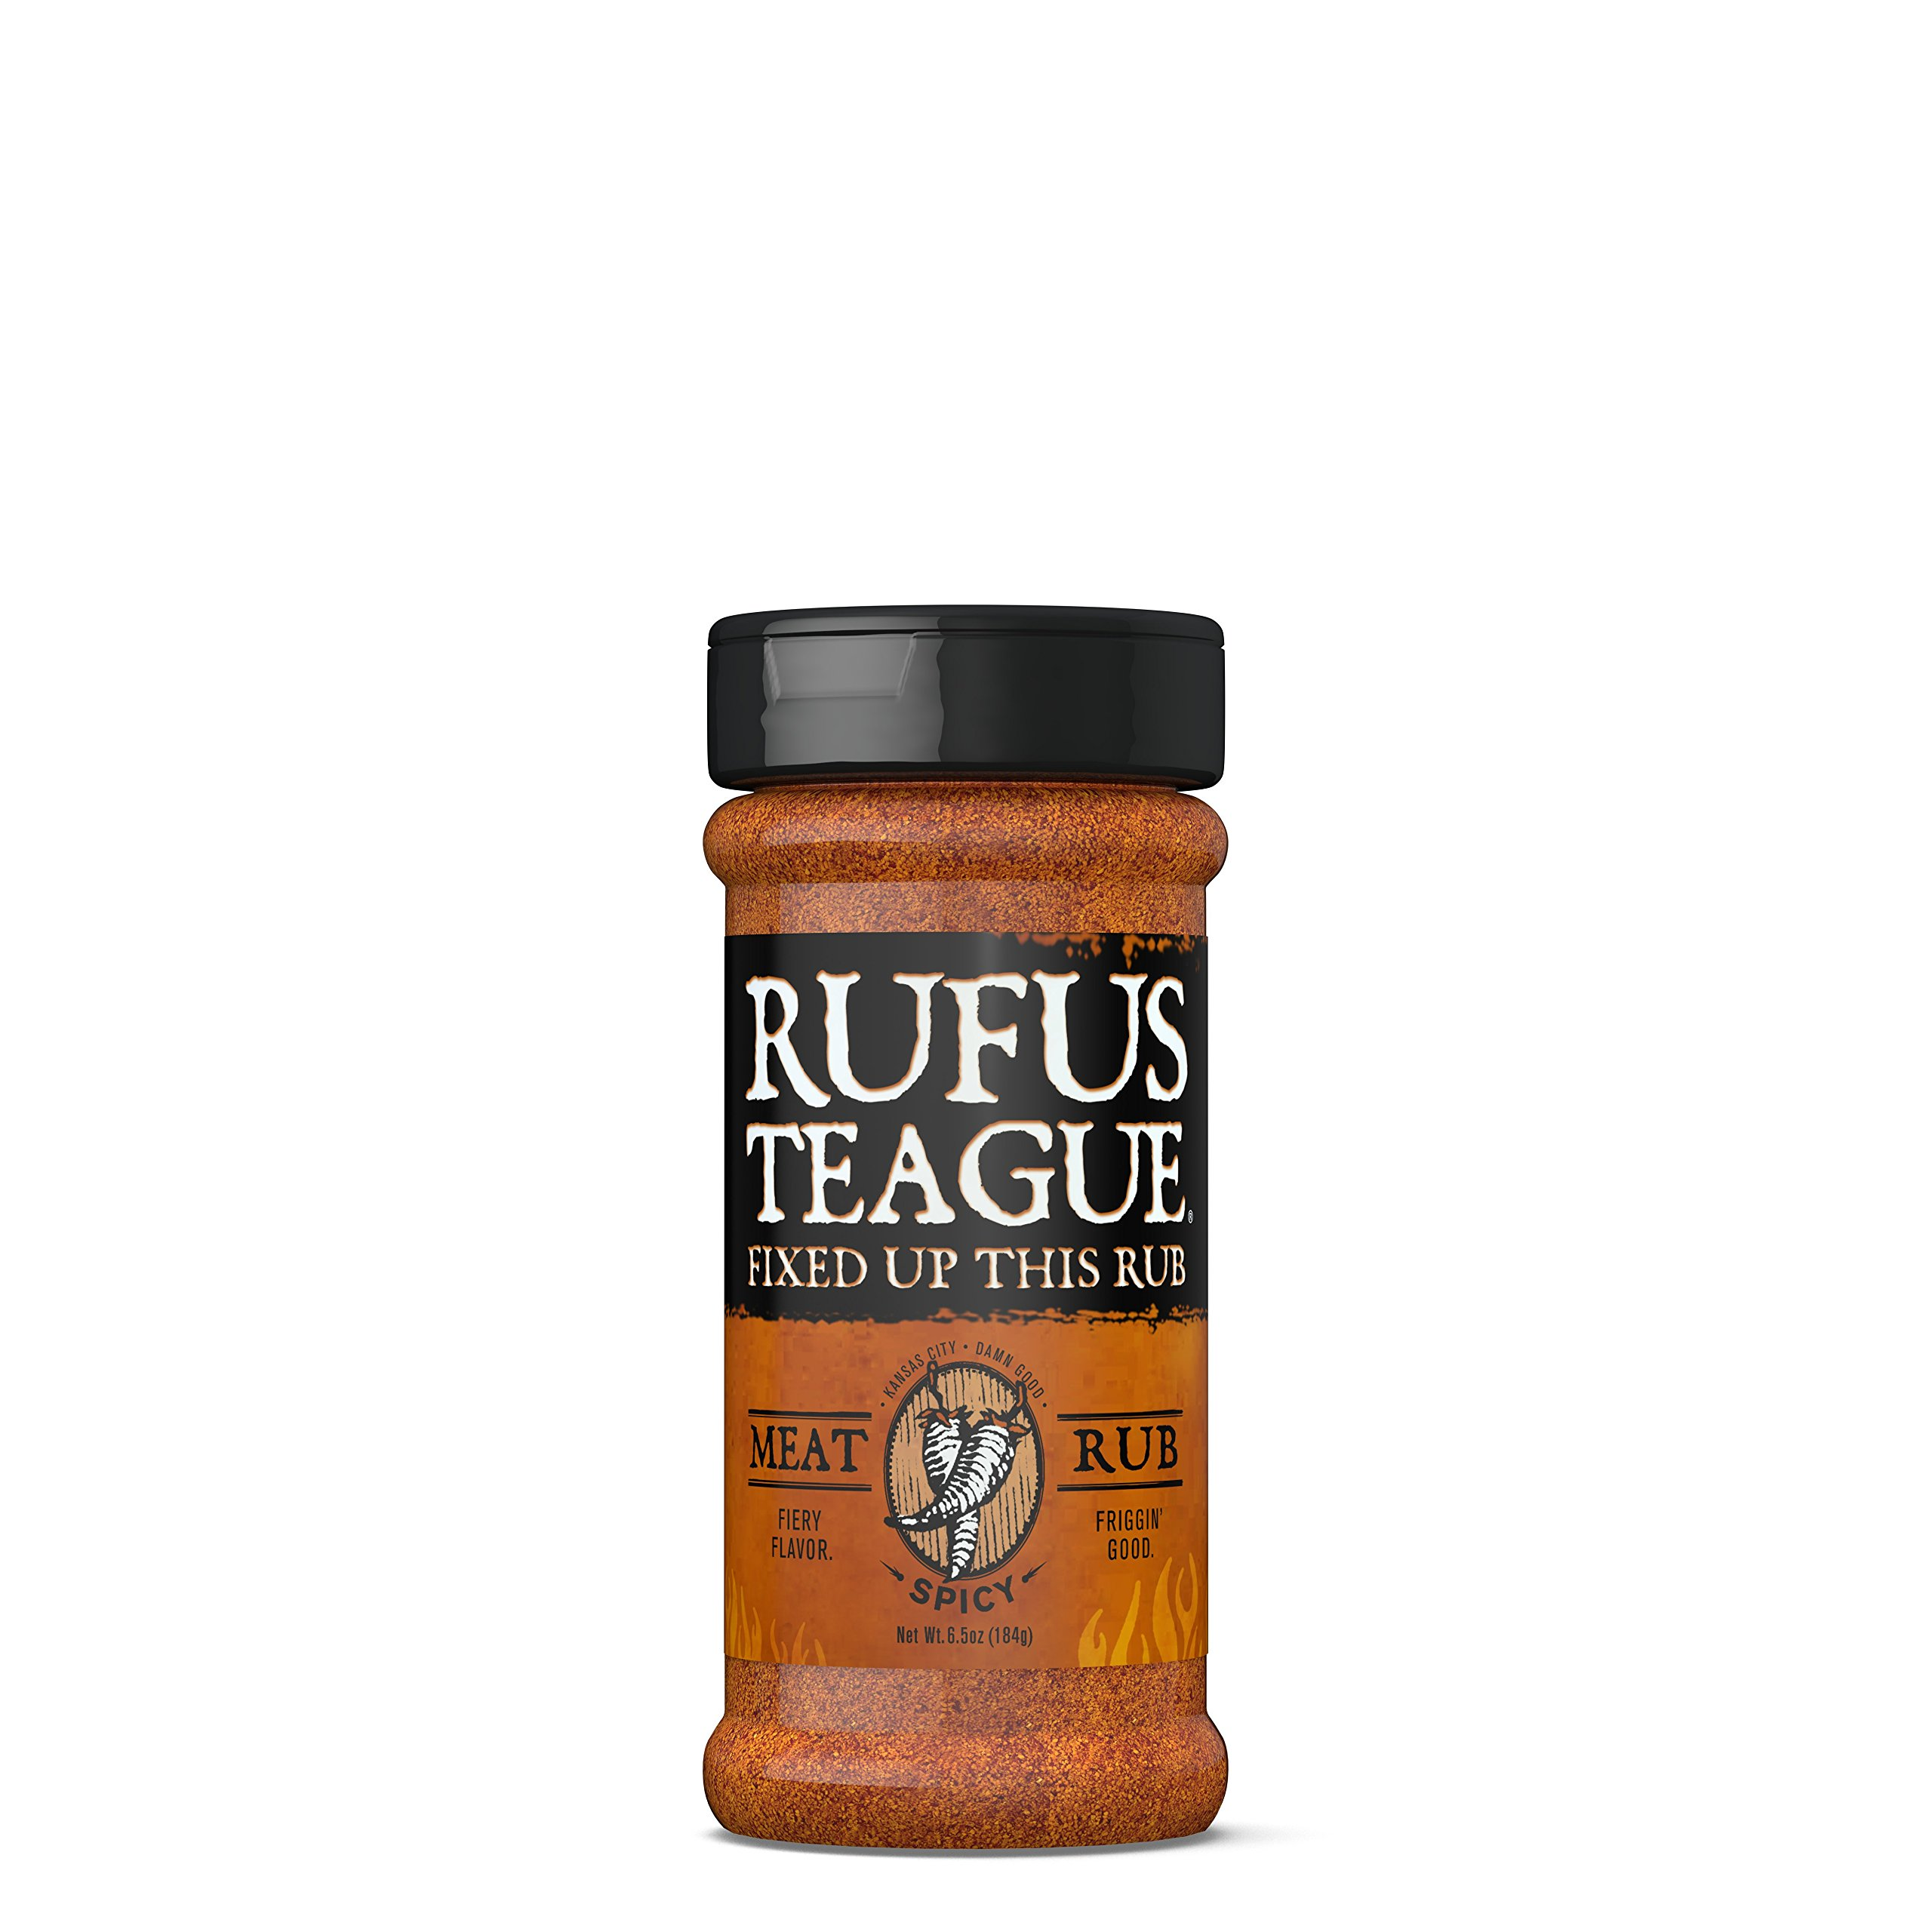 Rufus Teague - Spicy Meat Rub 6.5oz